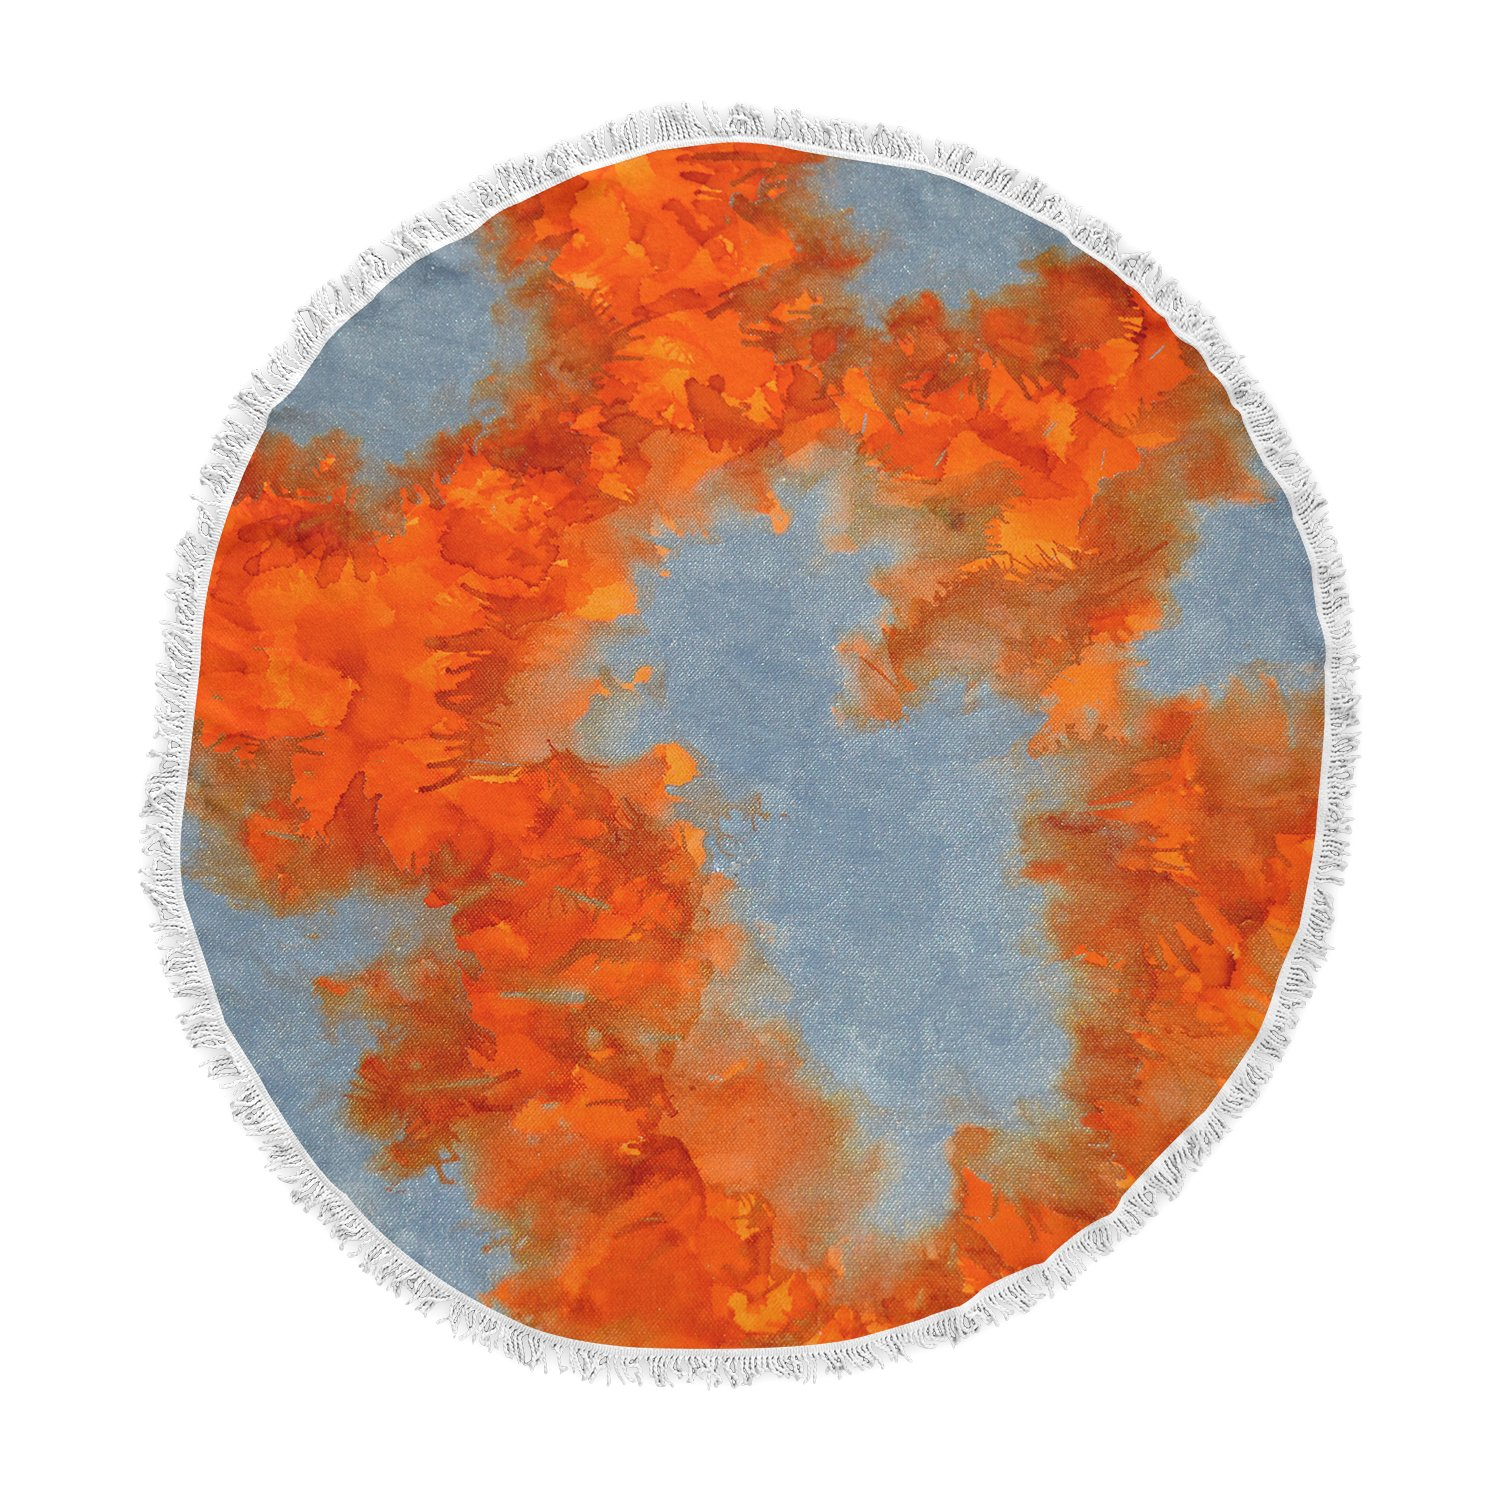 Kess InHouse Claire Day Broken Promises Orange Gray Abstract Painting Round Beach Towel Blanket